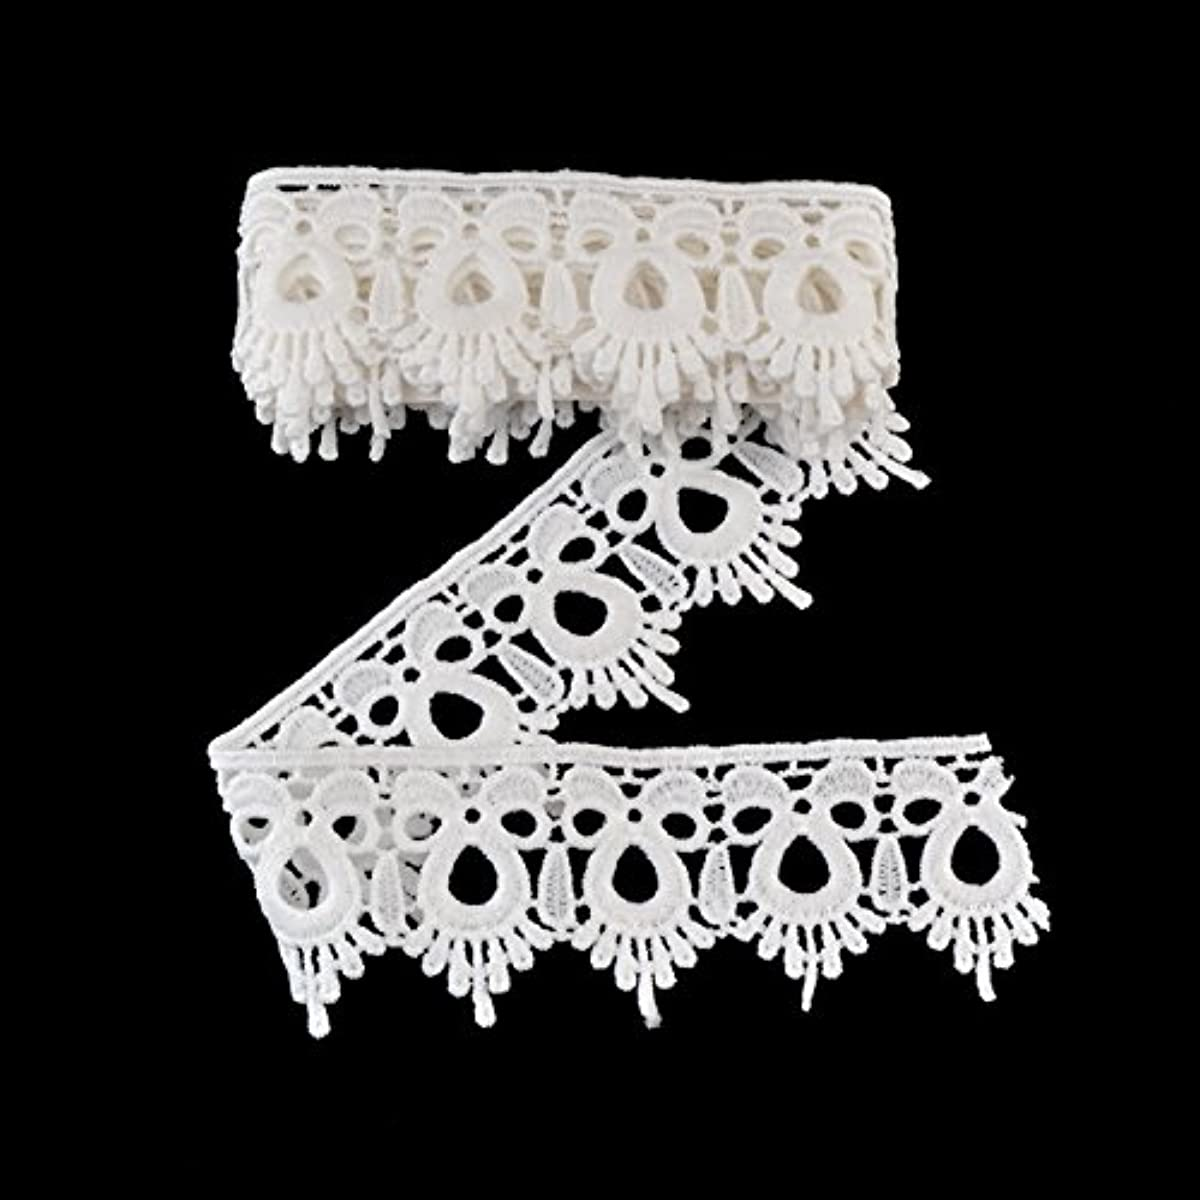 eZthings Venise Edging Lace Trim From Eyelet Fabric For DIY Craft Venice Trims (3 Yard, Trim)